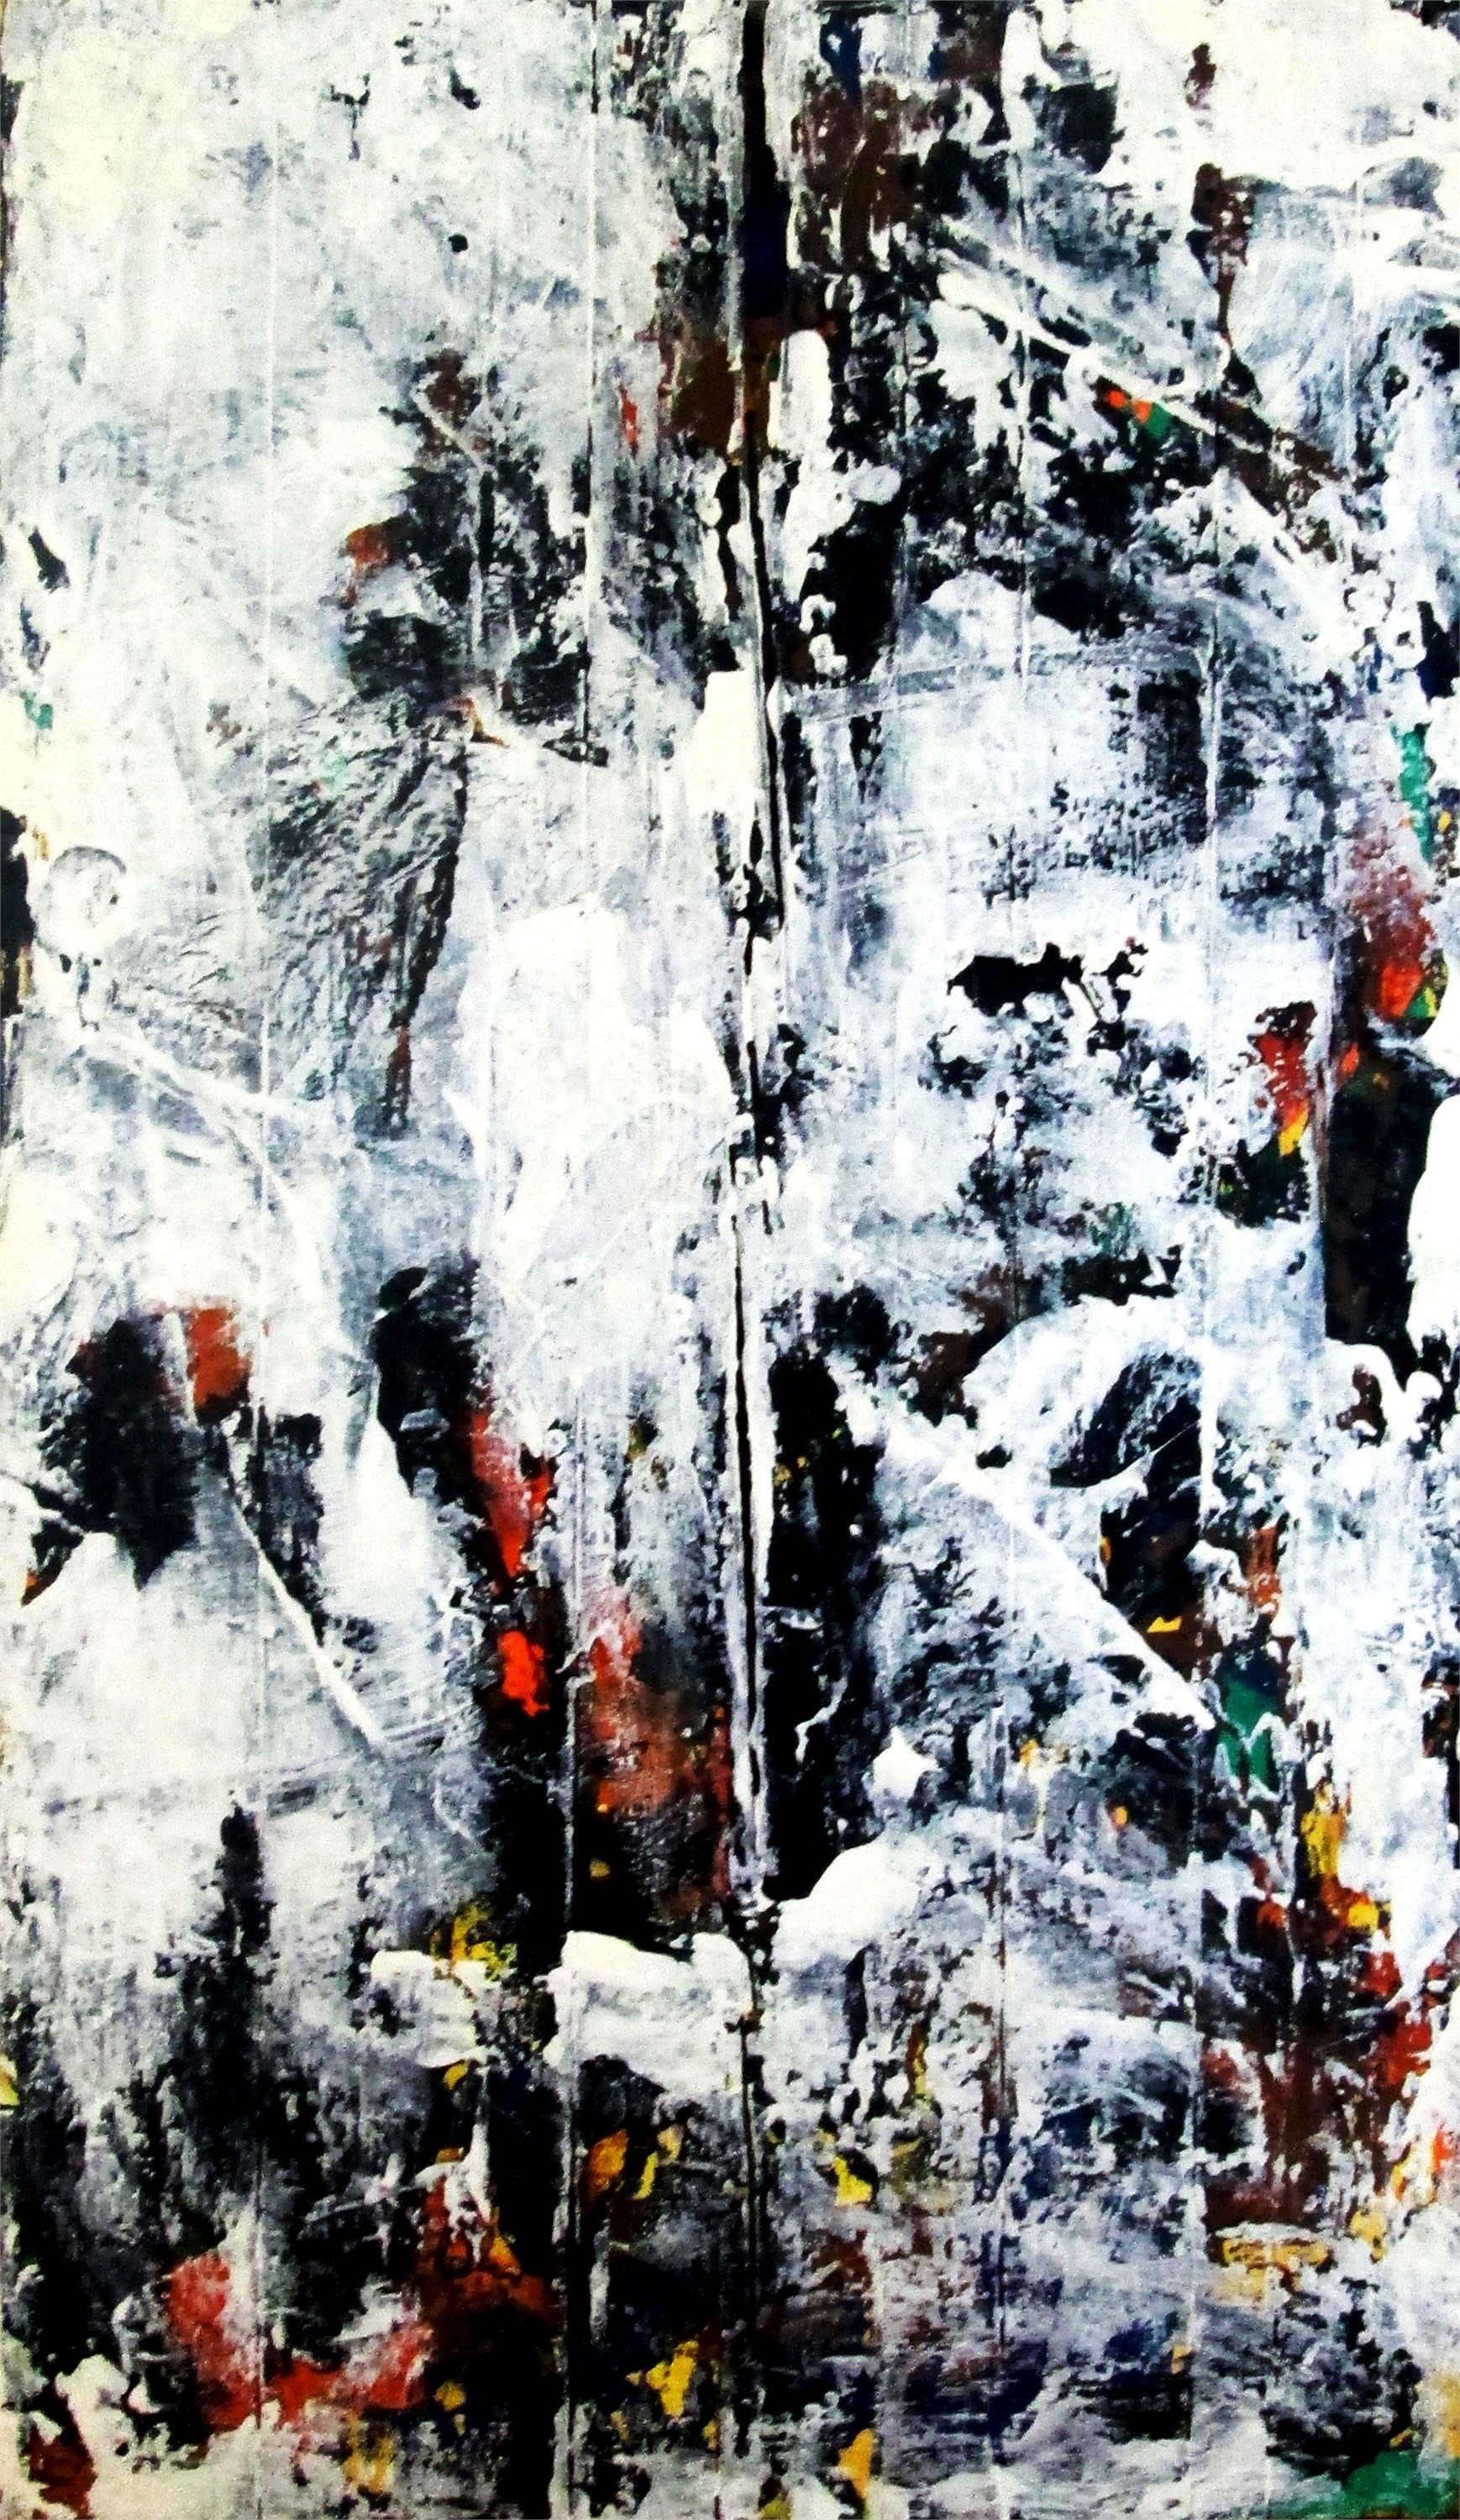 Snow Storm, original Abstract Acrylic Painting by Tiago Duarte